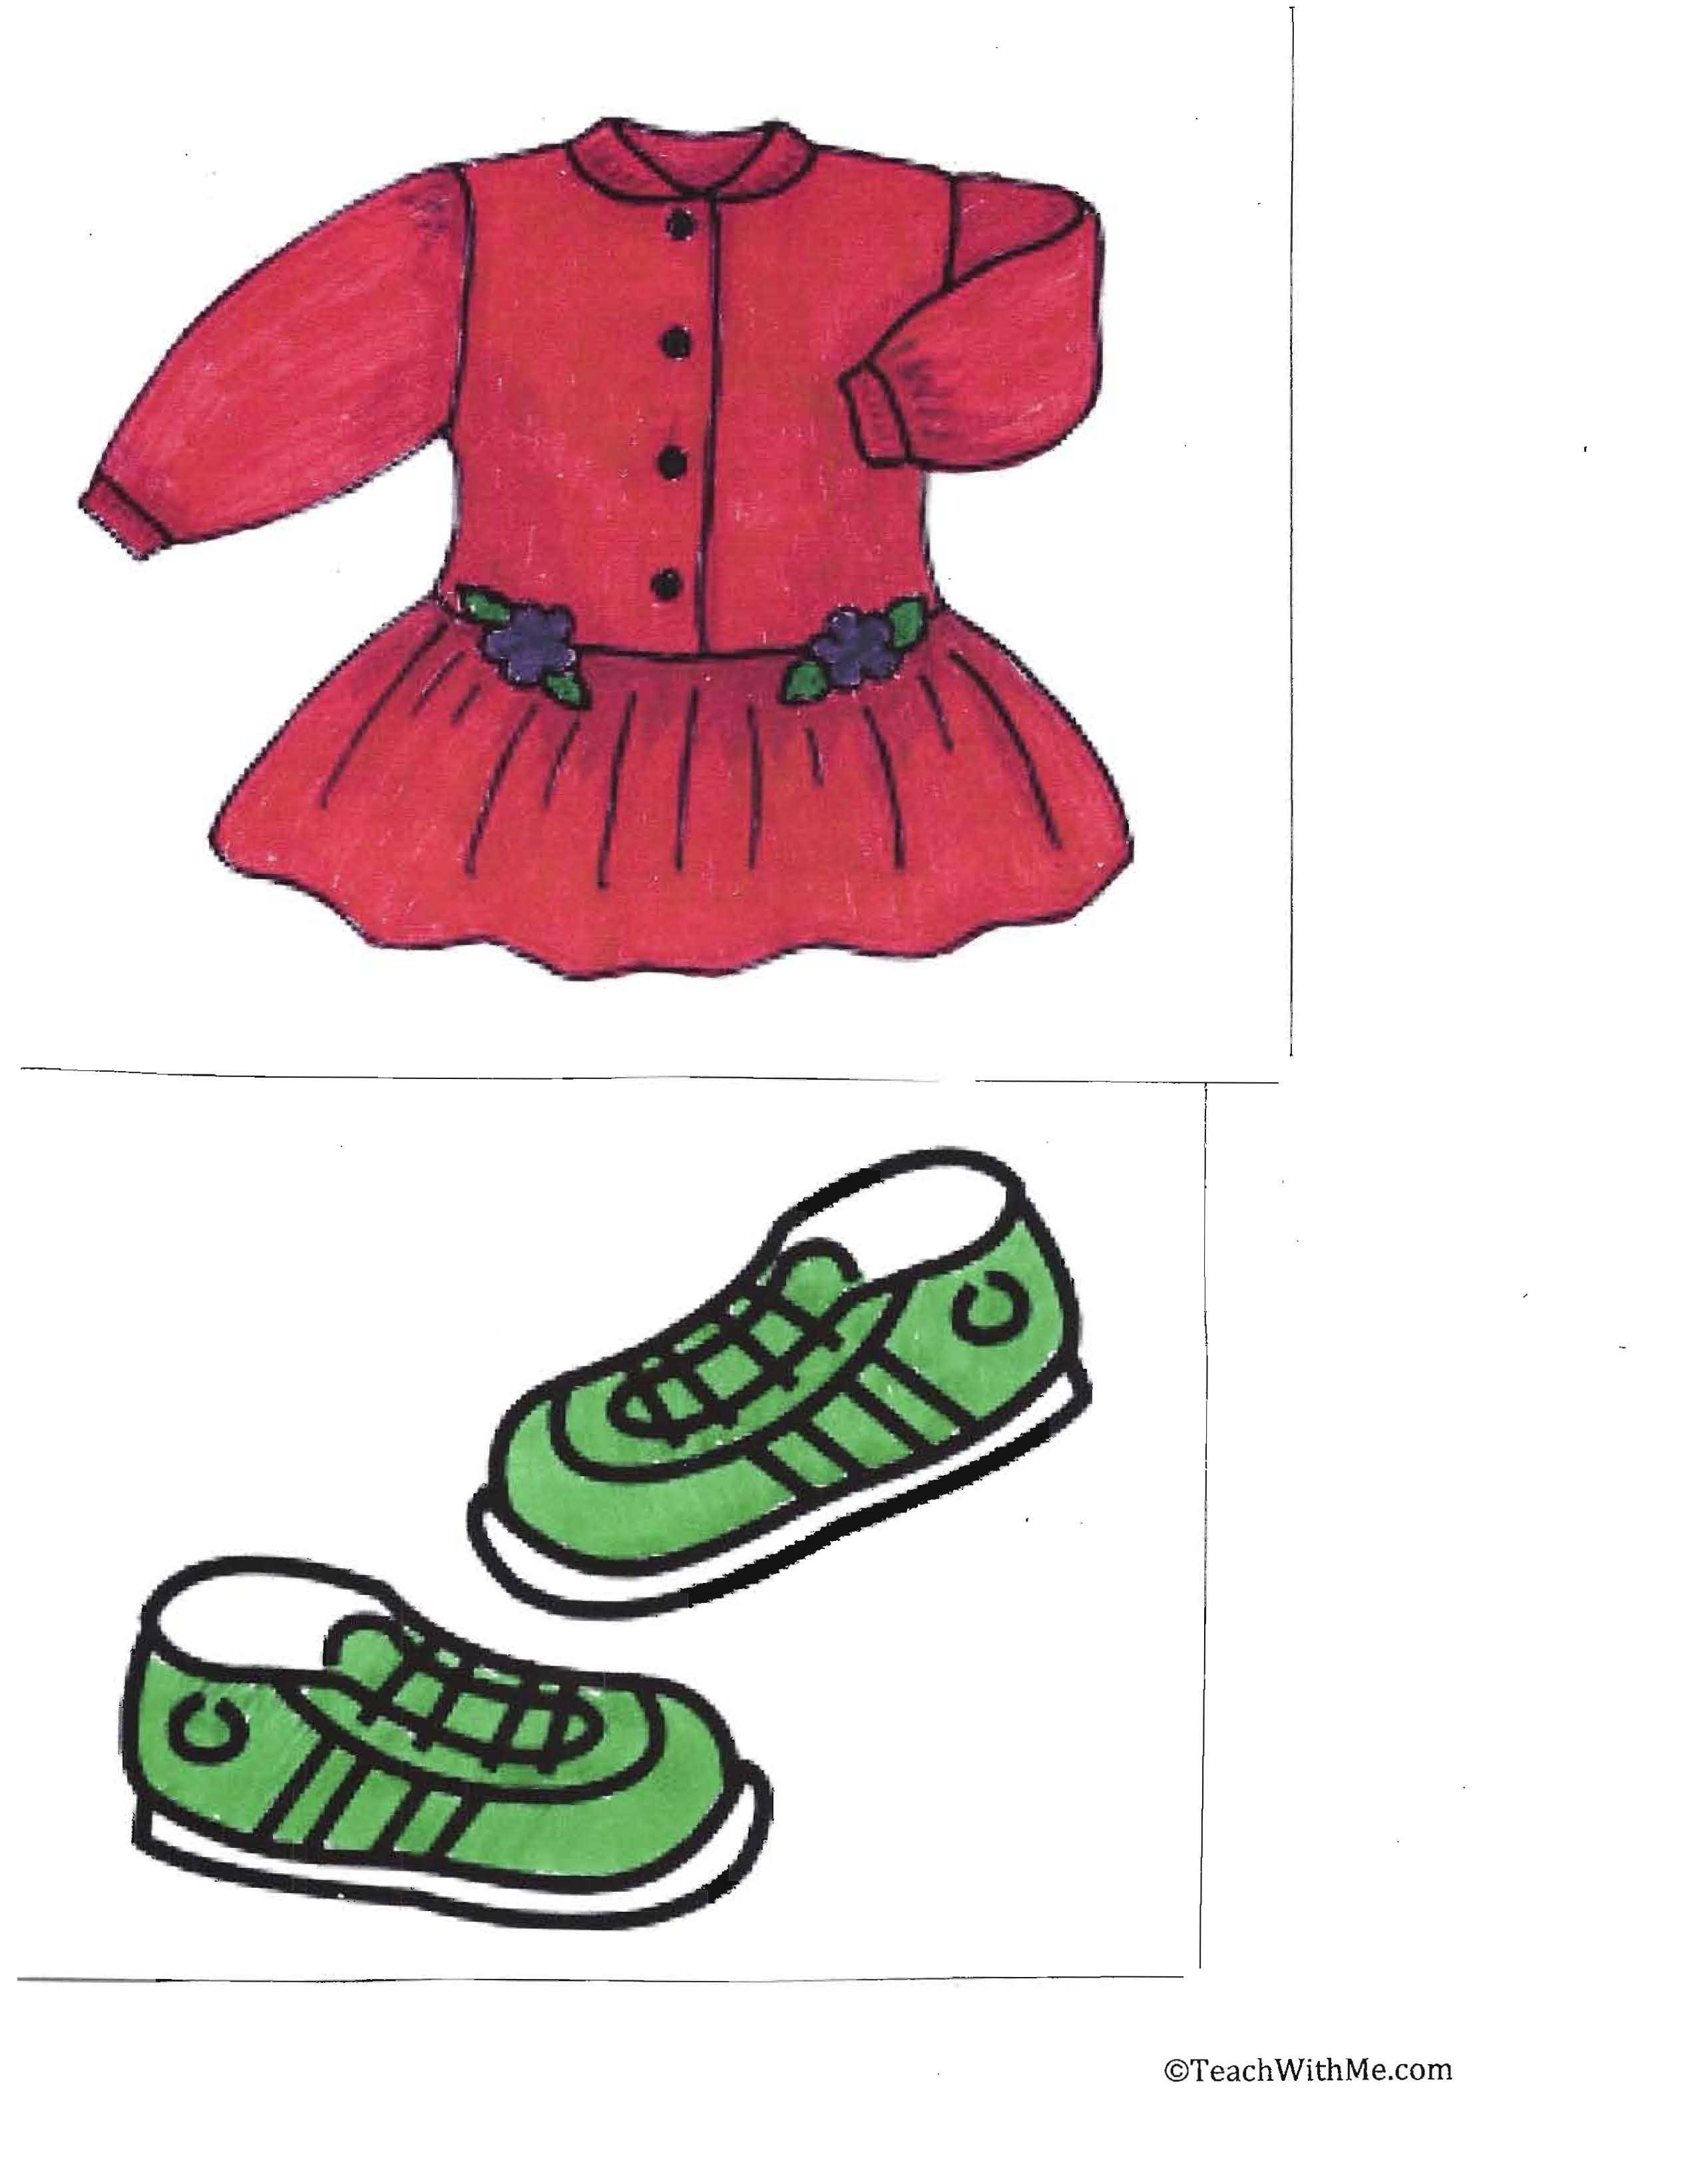 activities for Mary wore a red dress, lessons for mary wore a red dress, daily 5 activities for the first week of school daily 5 activities for september, writing prompts for september, writing prompts for the first week of school, writing prompts for back to school, writing class books, class book ideas, class book writing prompts, common core lessons for first grade, common core lessons for kindergarten, common core activiries for first, common core activities for kindergarten, rhyming word lessons, color lessons, color activities,color booklets, rhyming word activities,